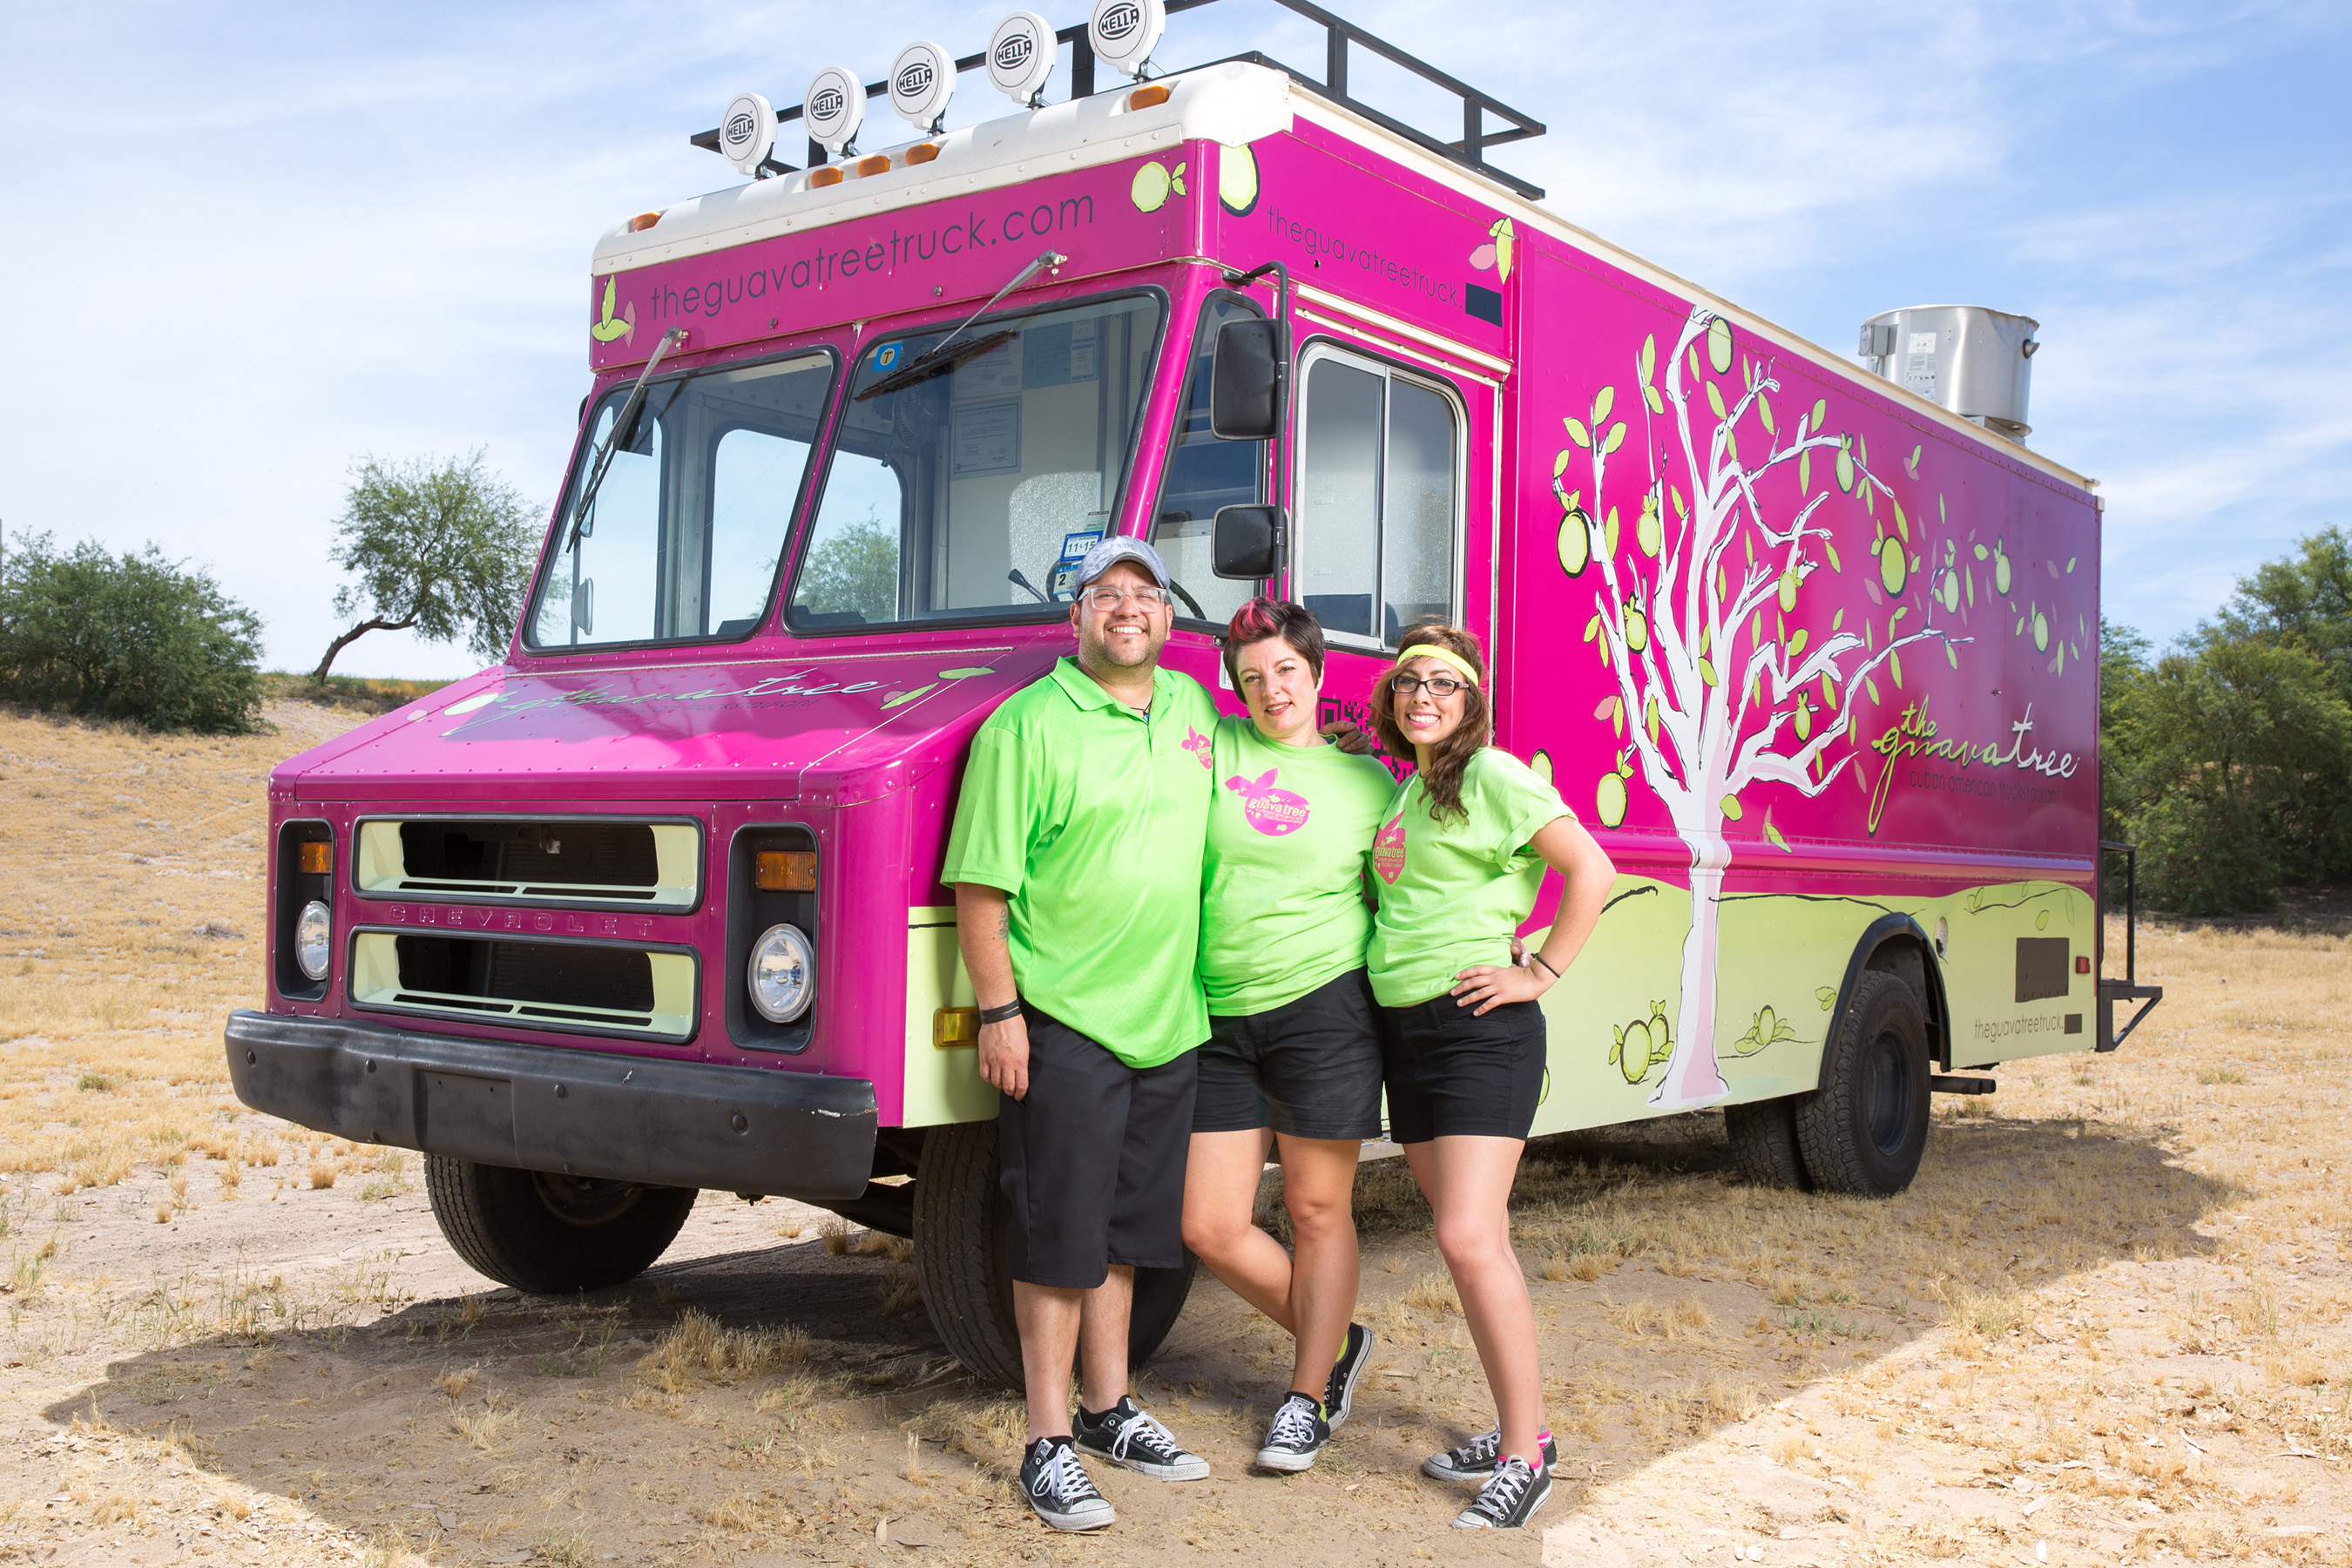 Dallas-based food truck to compete on 'The Great Food Truck Race